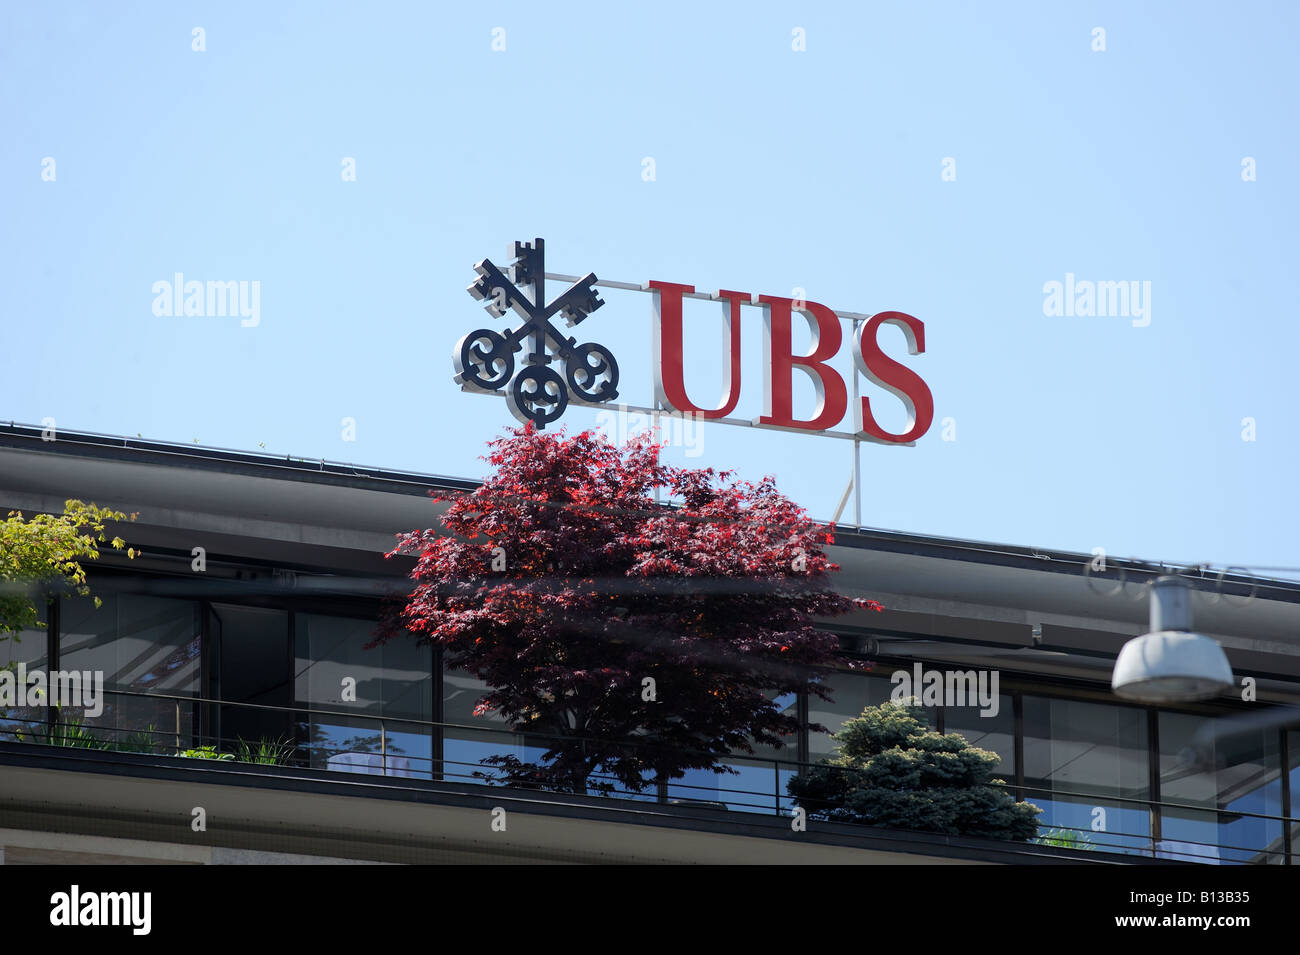 UBS logo at the roof - Stock Image